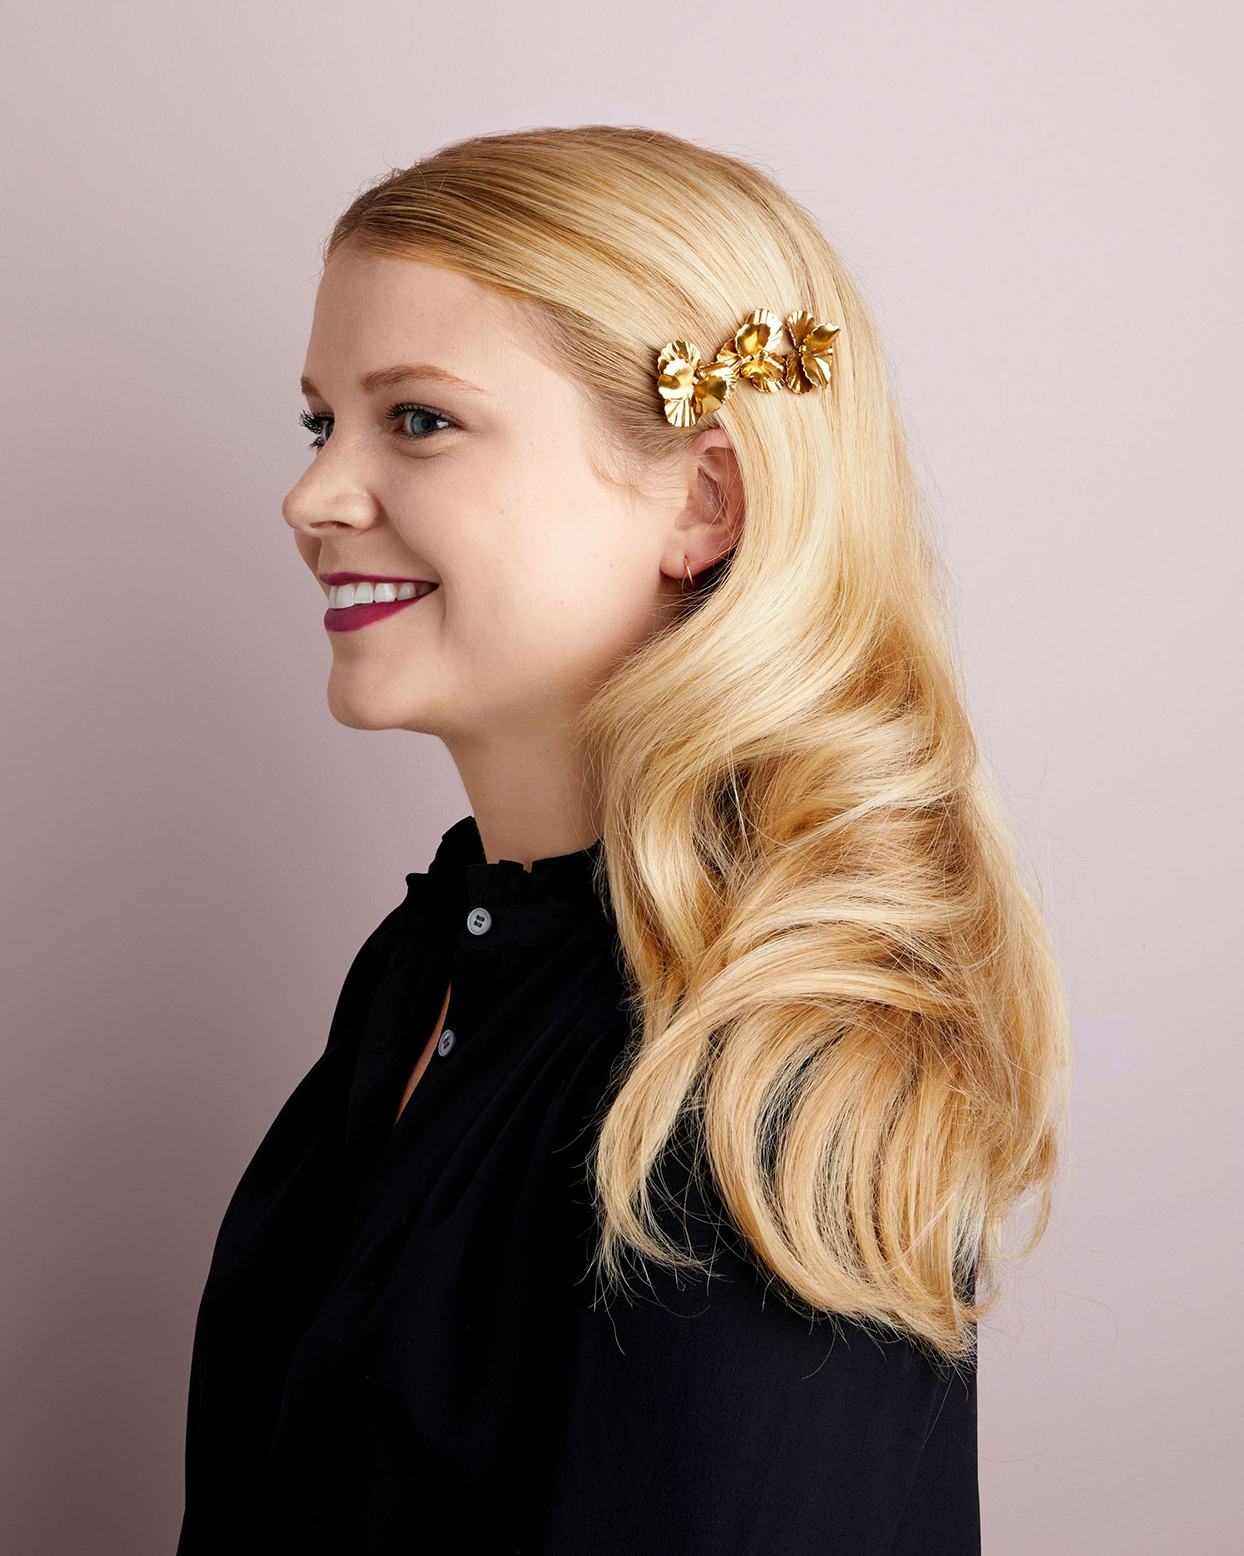 blond haired woman wearing gold barrette